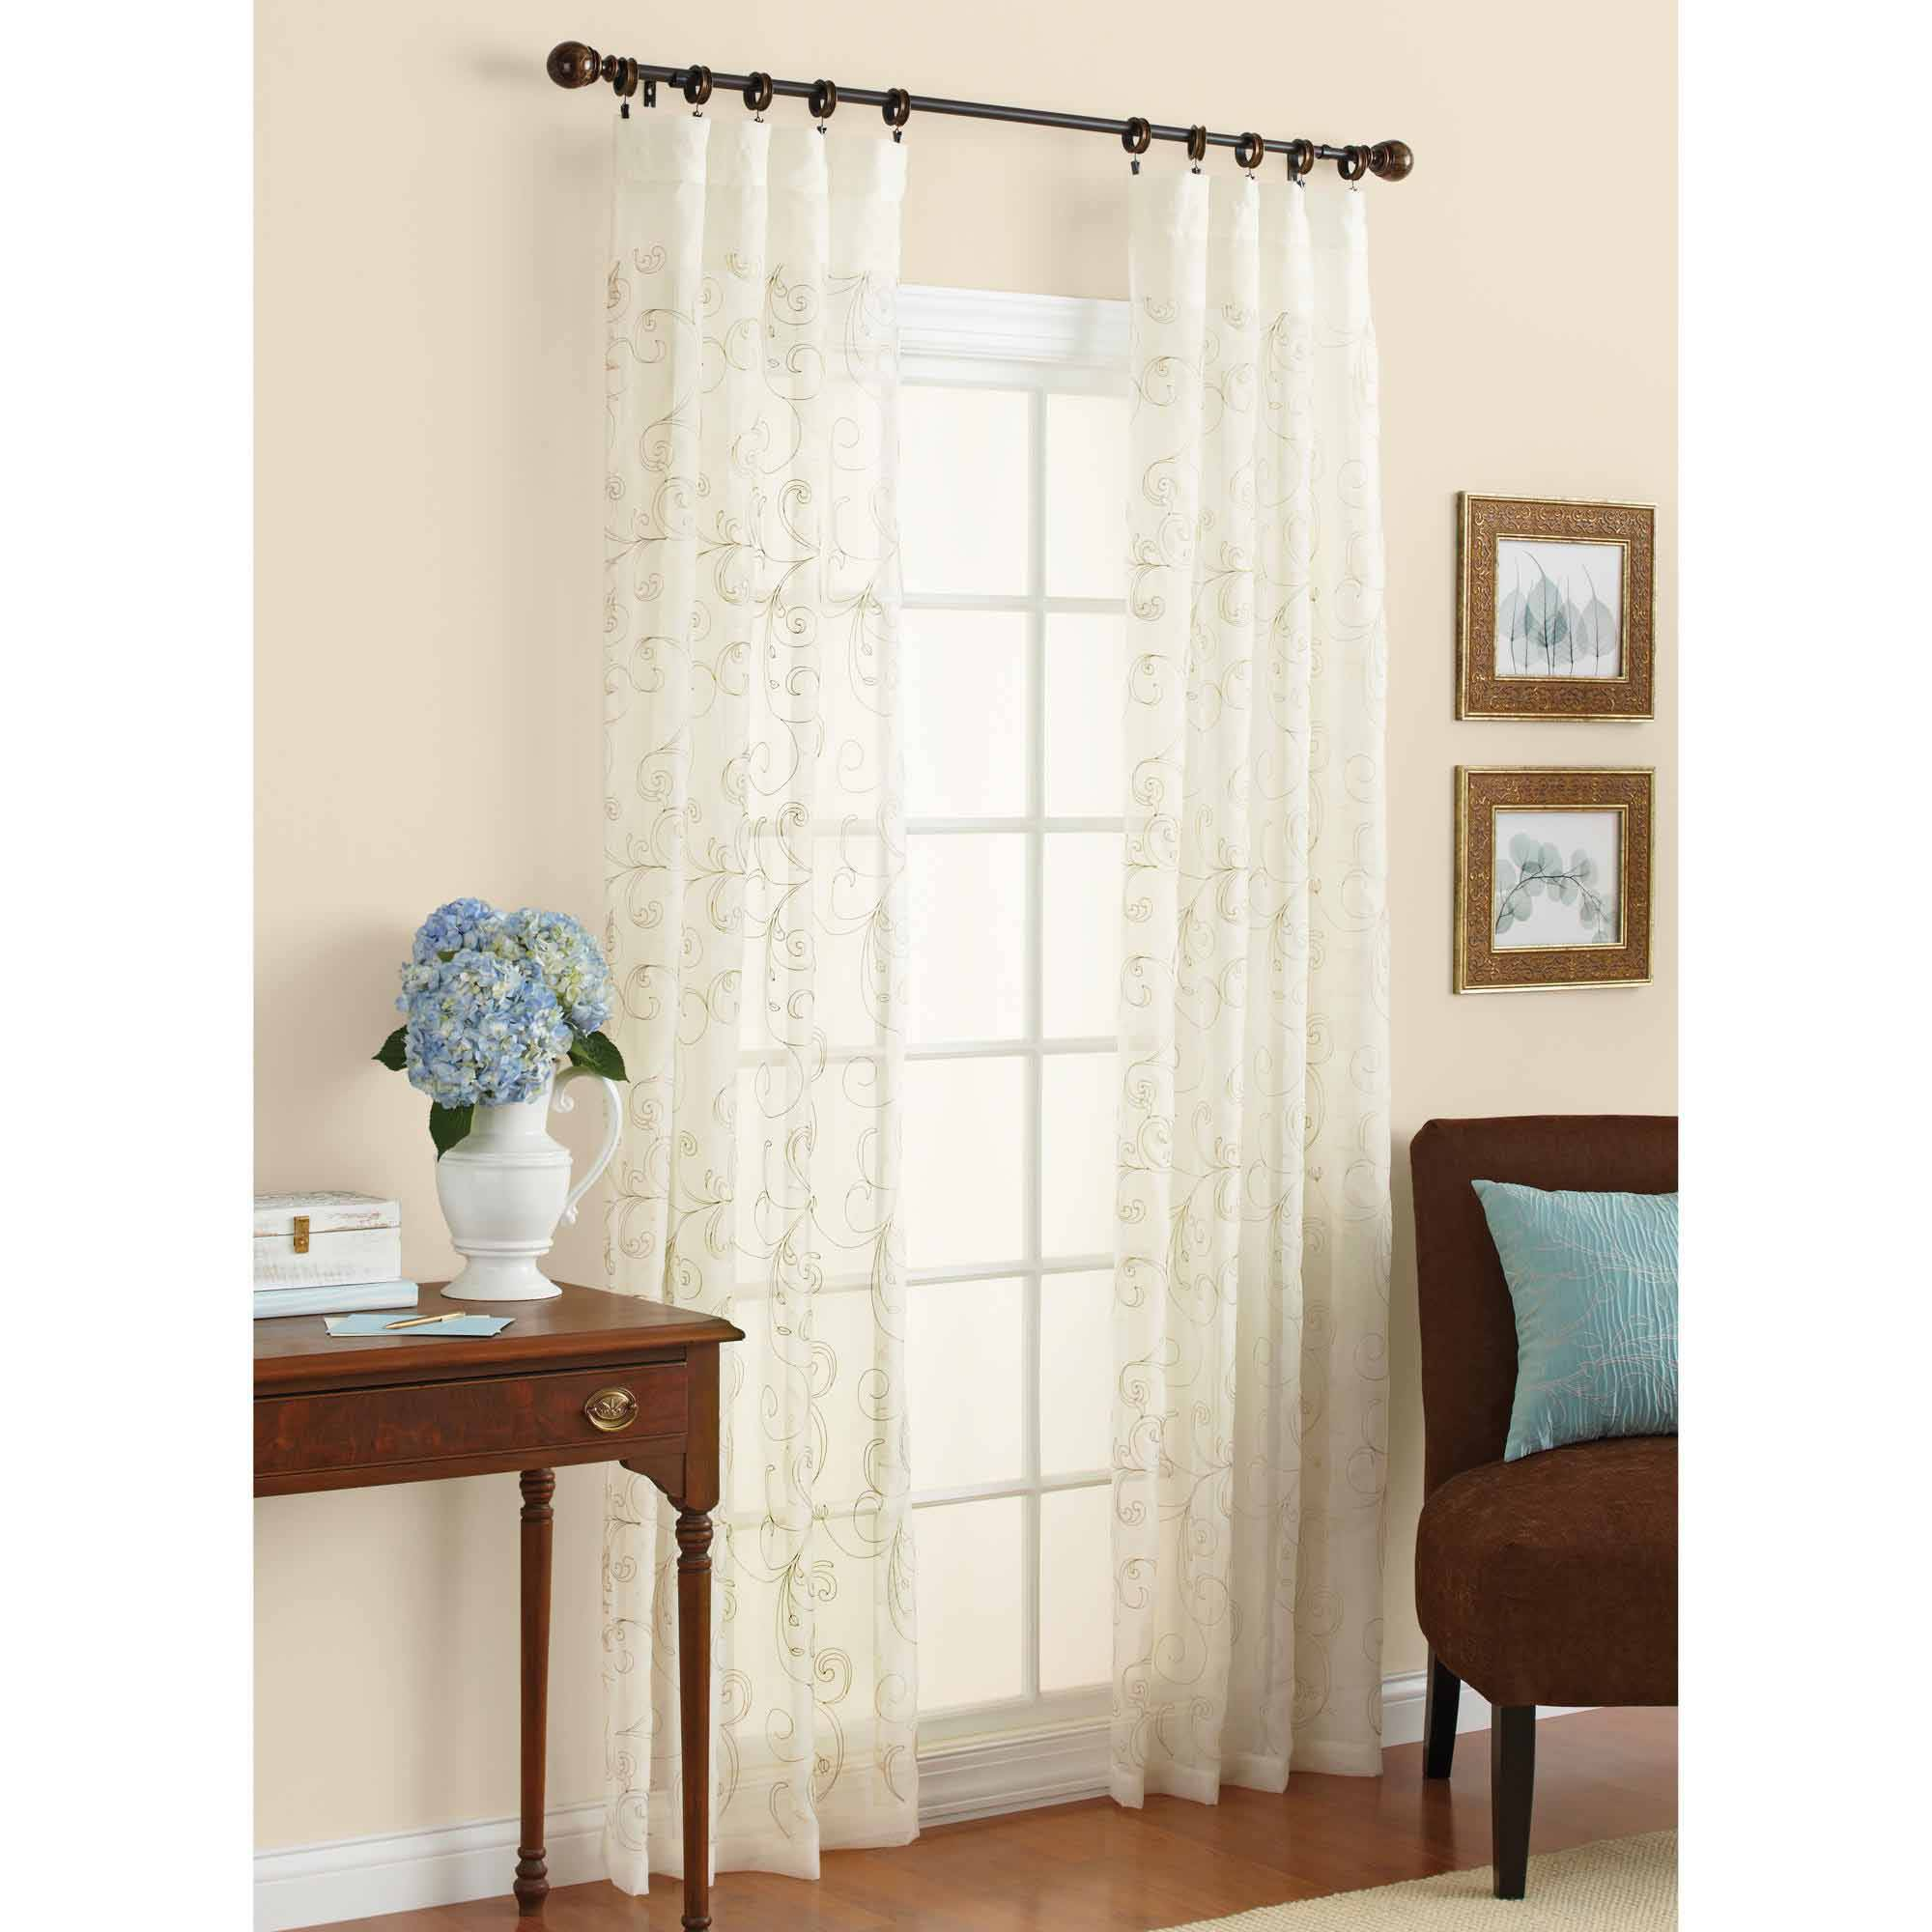 Spotlight Ready To Hang Sheer Curtains Better Homes Gardens Lace Fan Print Panel